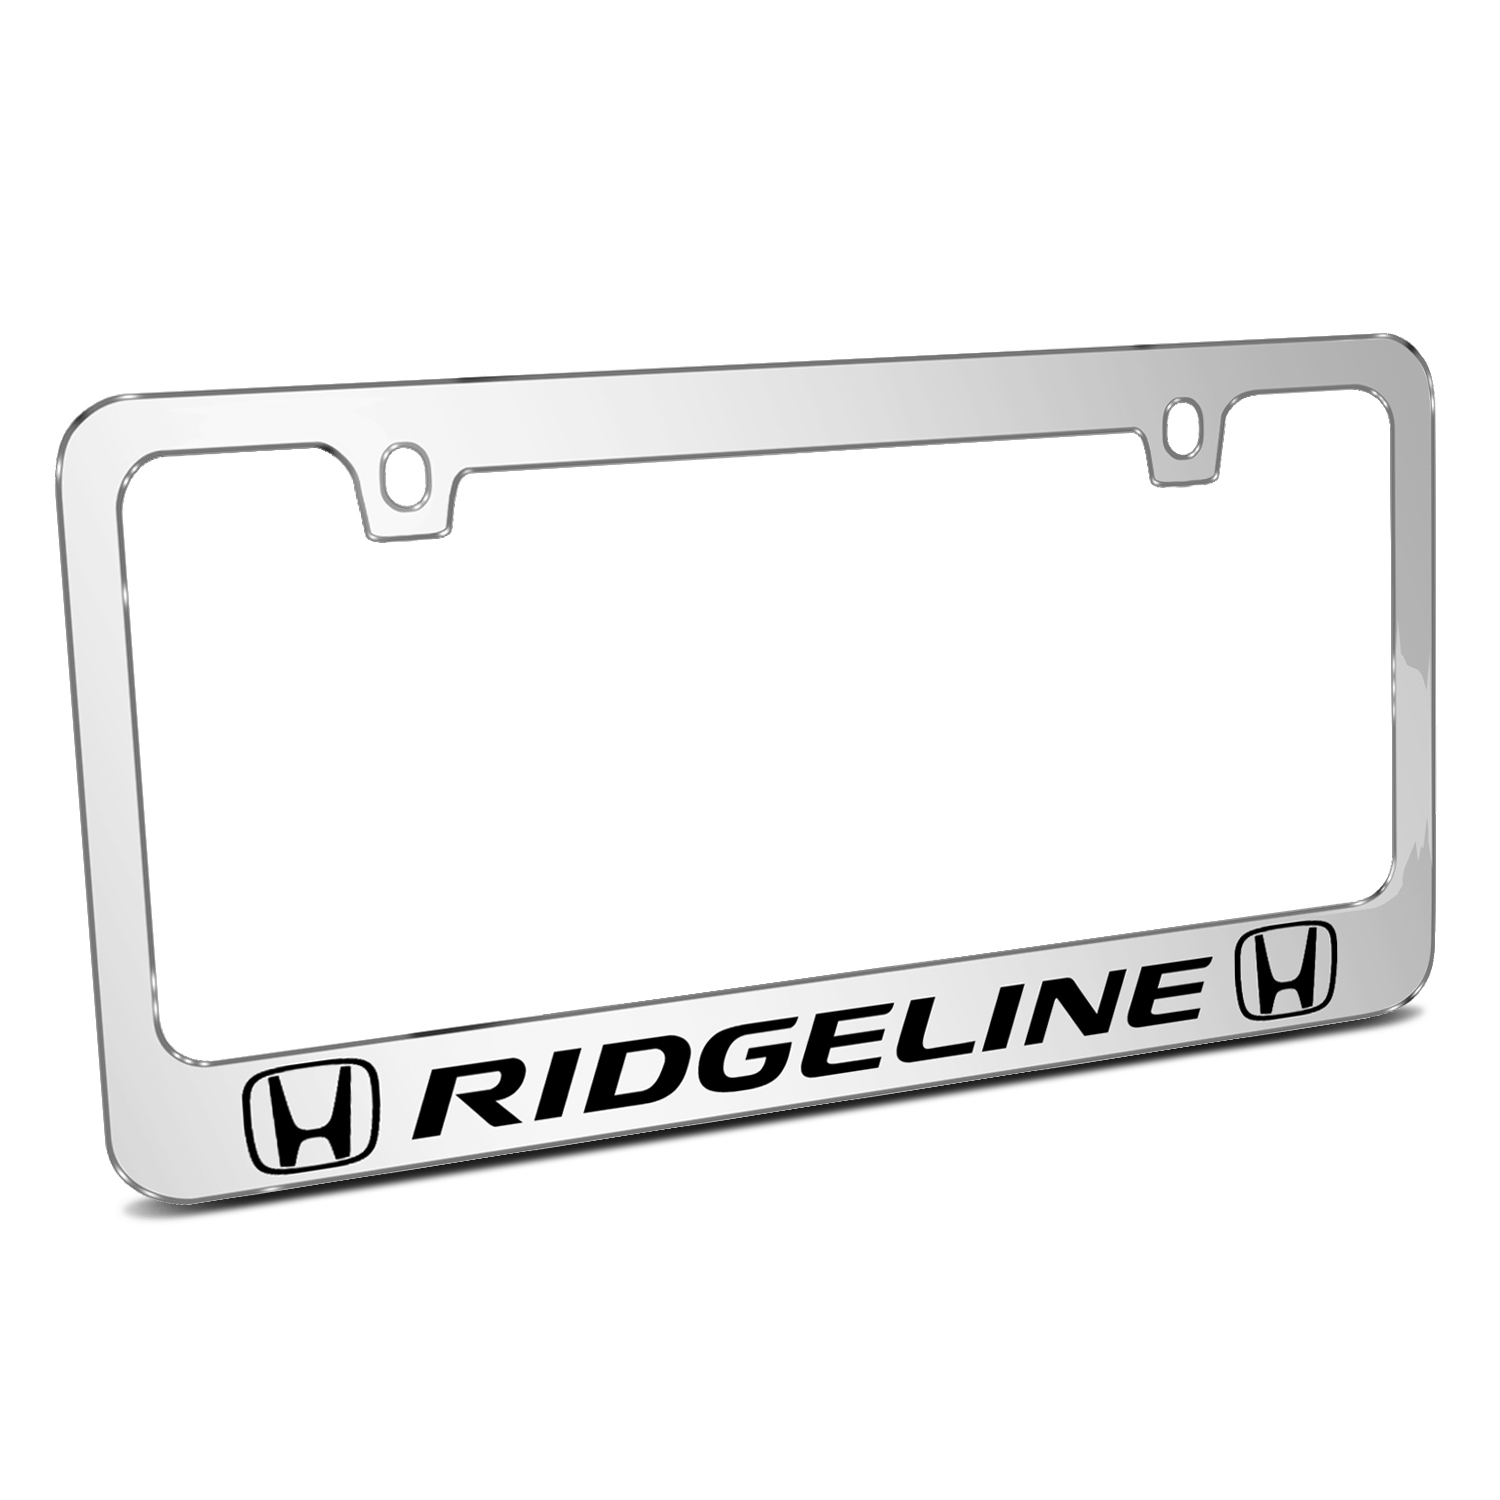 Stainless Steel Fit Mercury Chrome License Plate Frame with Cap